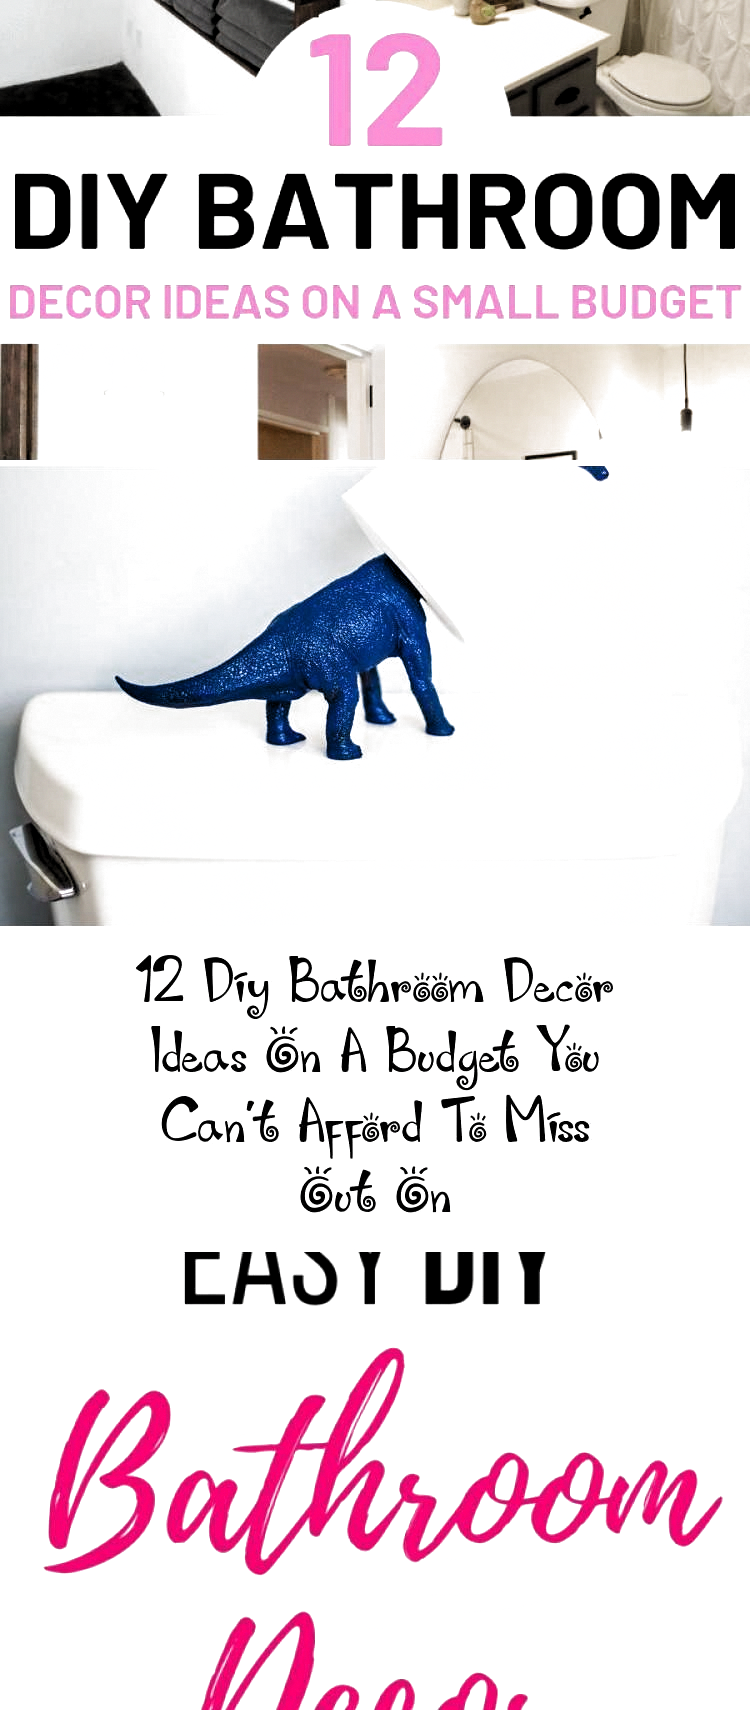 Photo of 12 Diy Bathroom Decor Ideas On A Budget You Can't Afford To Miss Out On – Home…